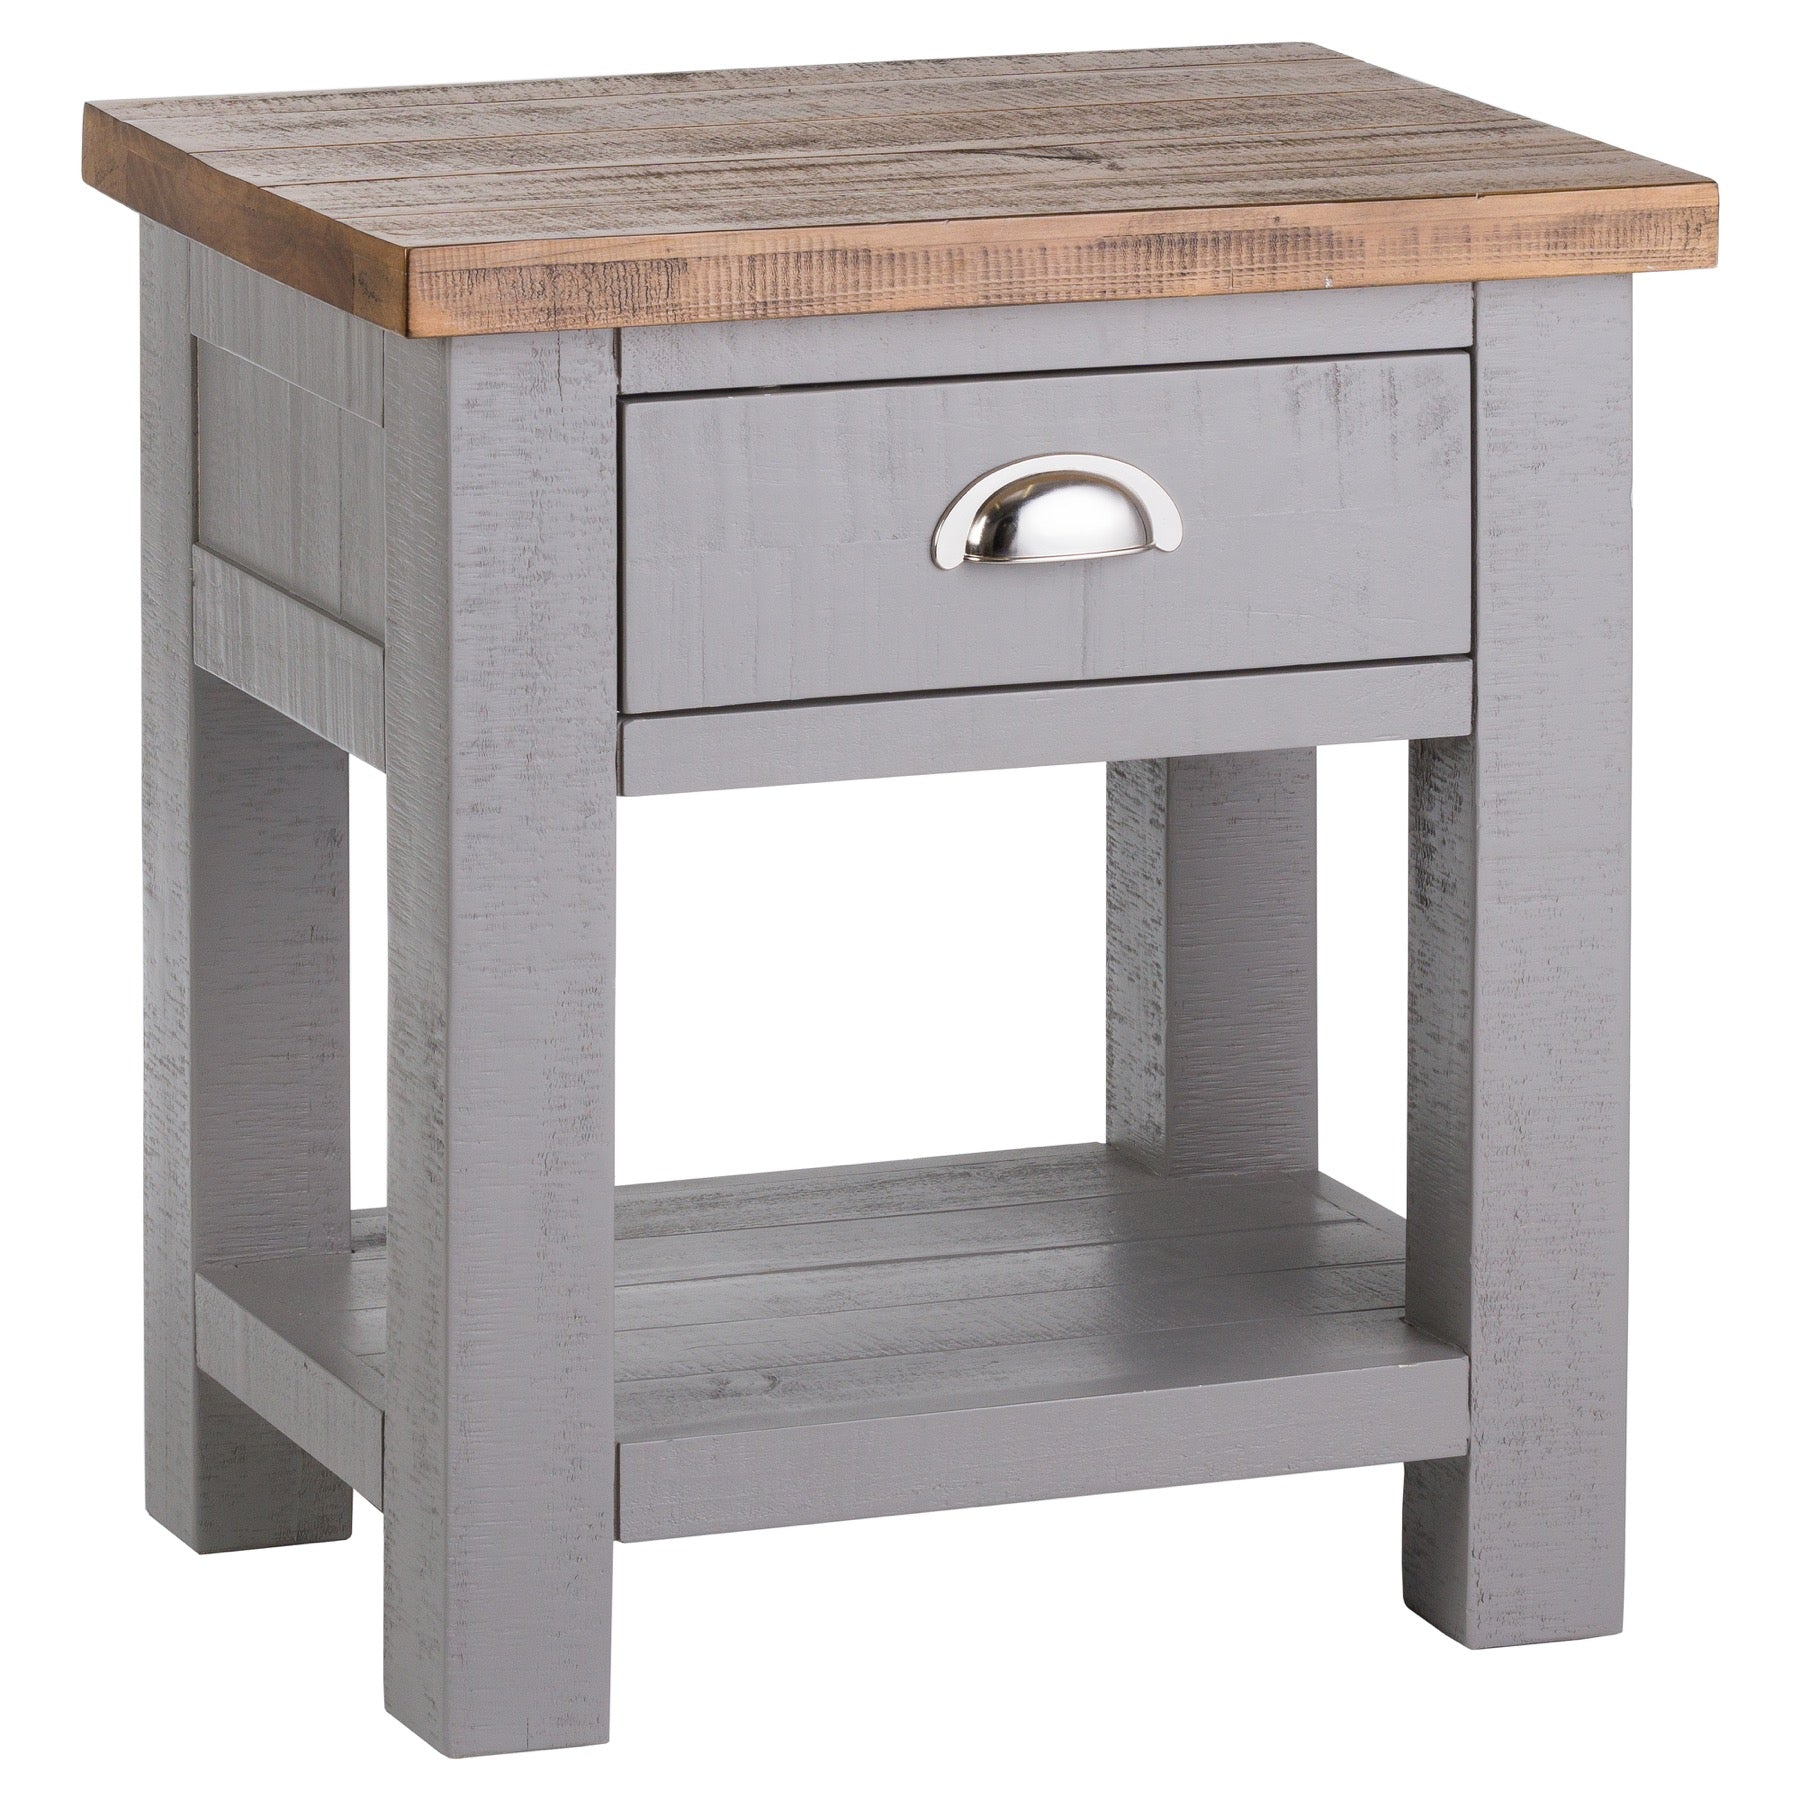 The Helmsley Collection Side Table